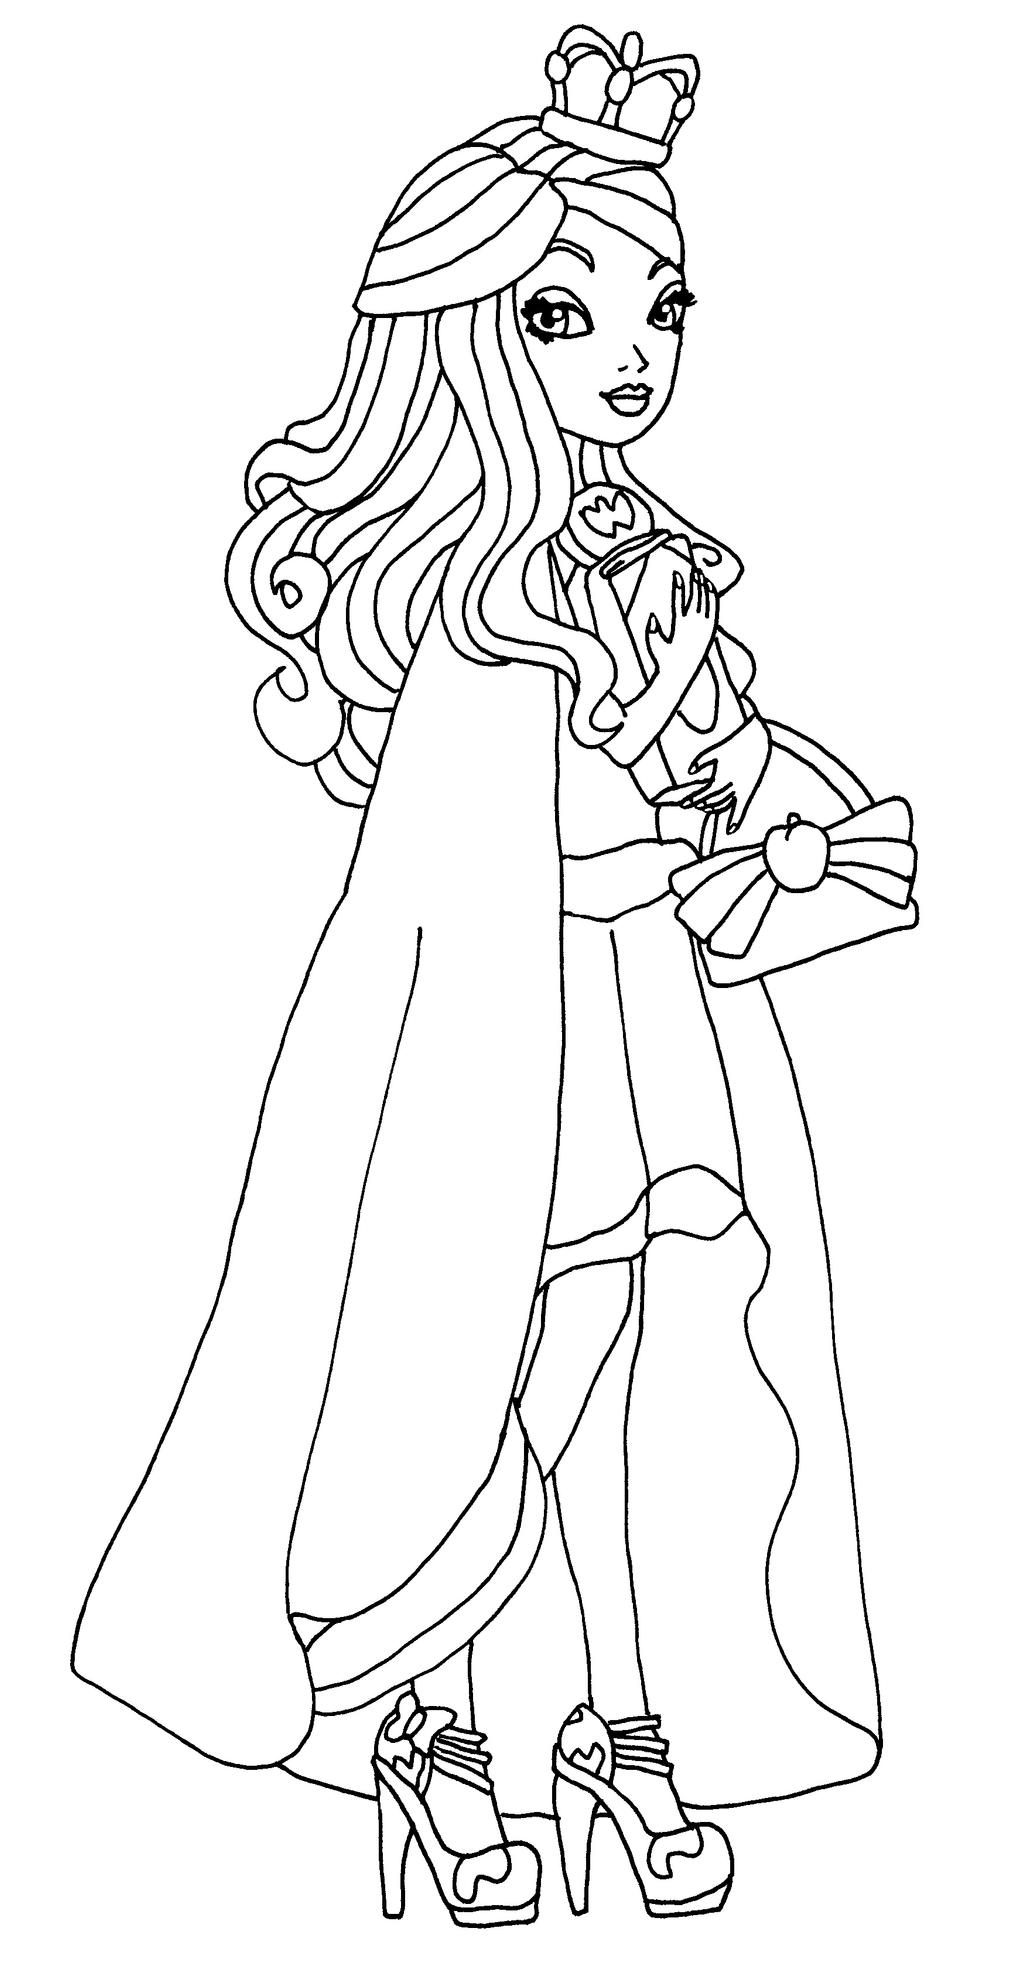 Colouring pages for ever after high - Elfkena 6 0 Legacy Day Apple By Elfkena